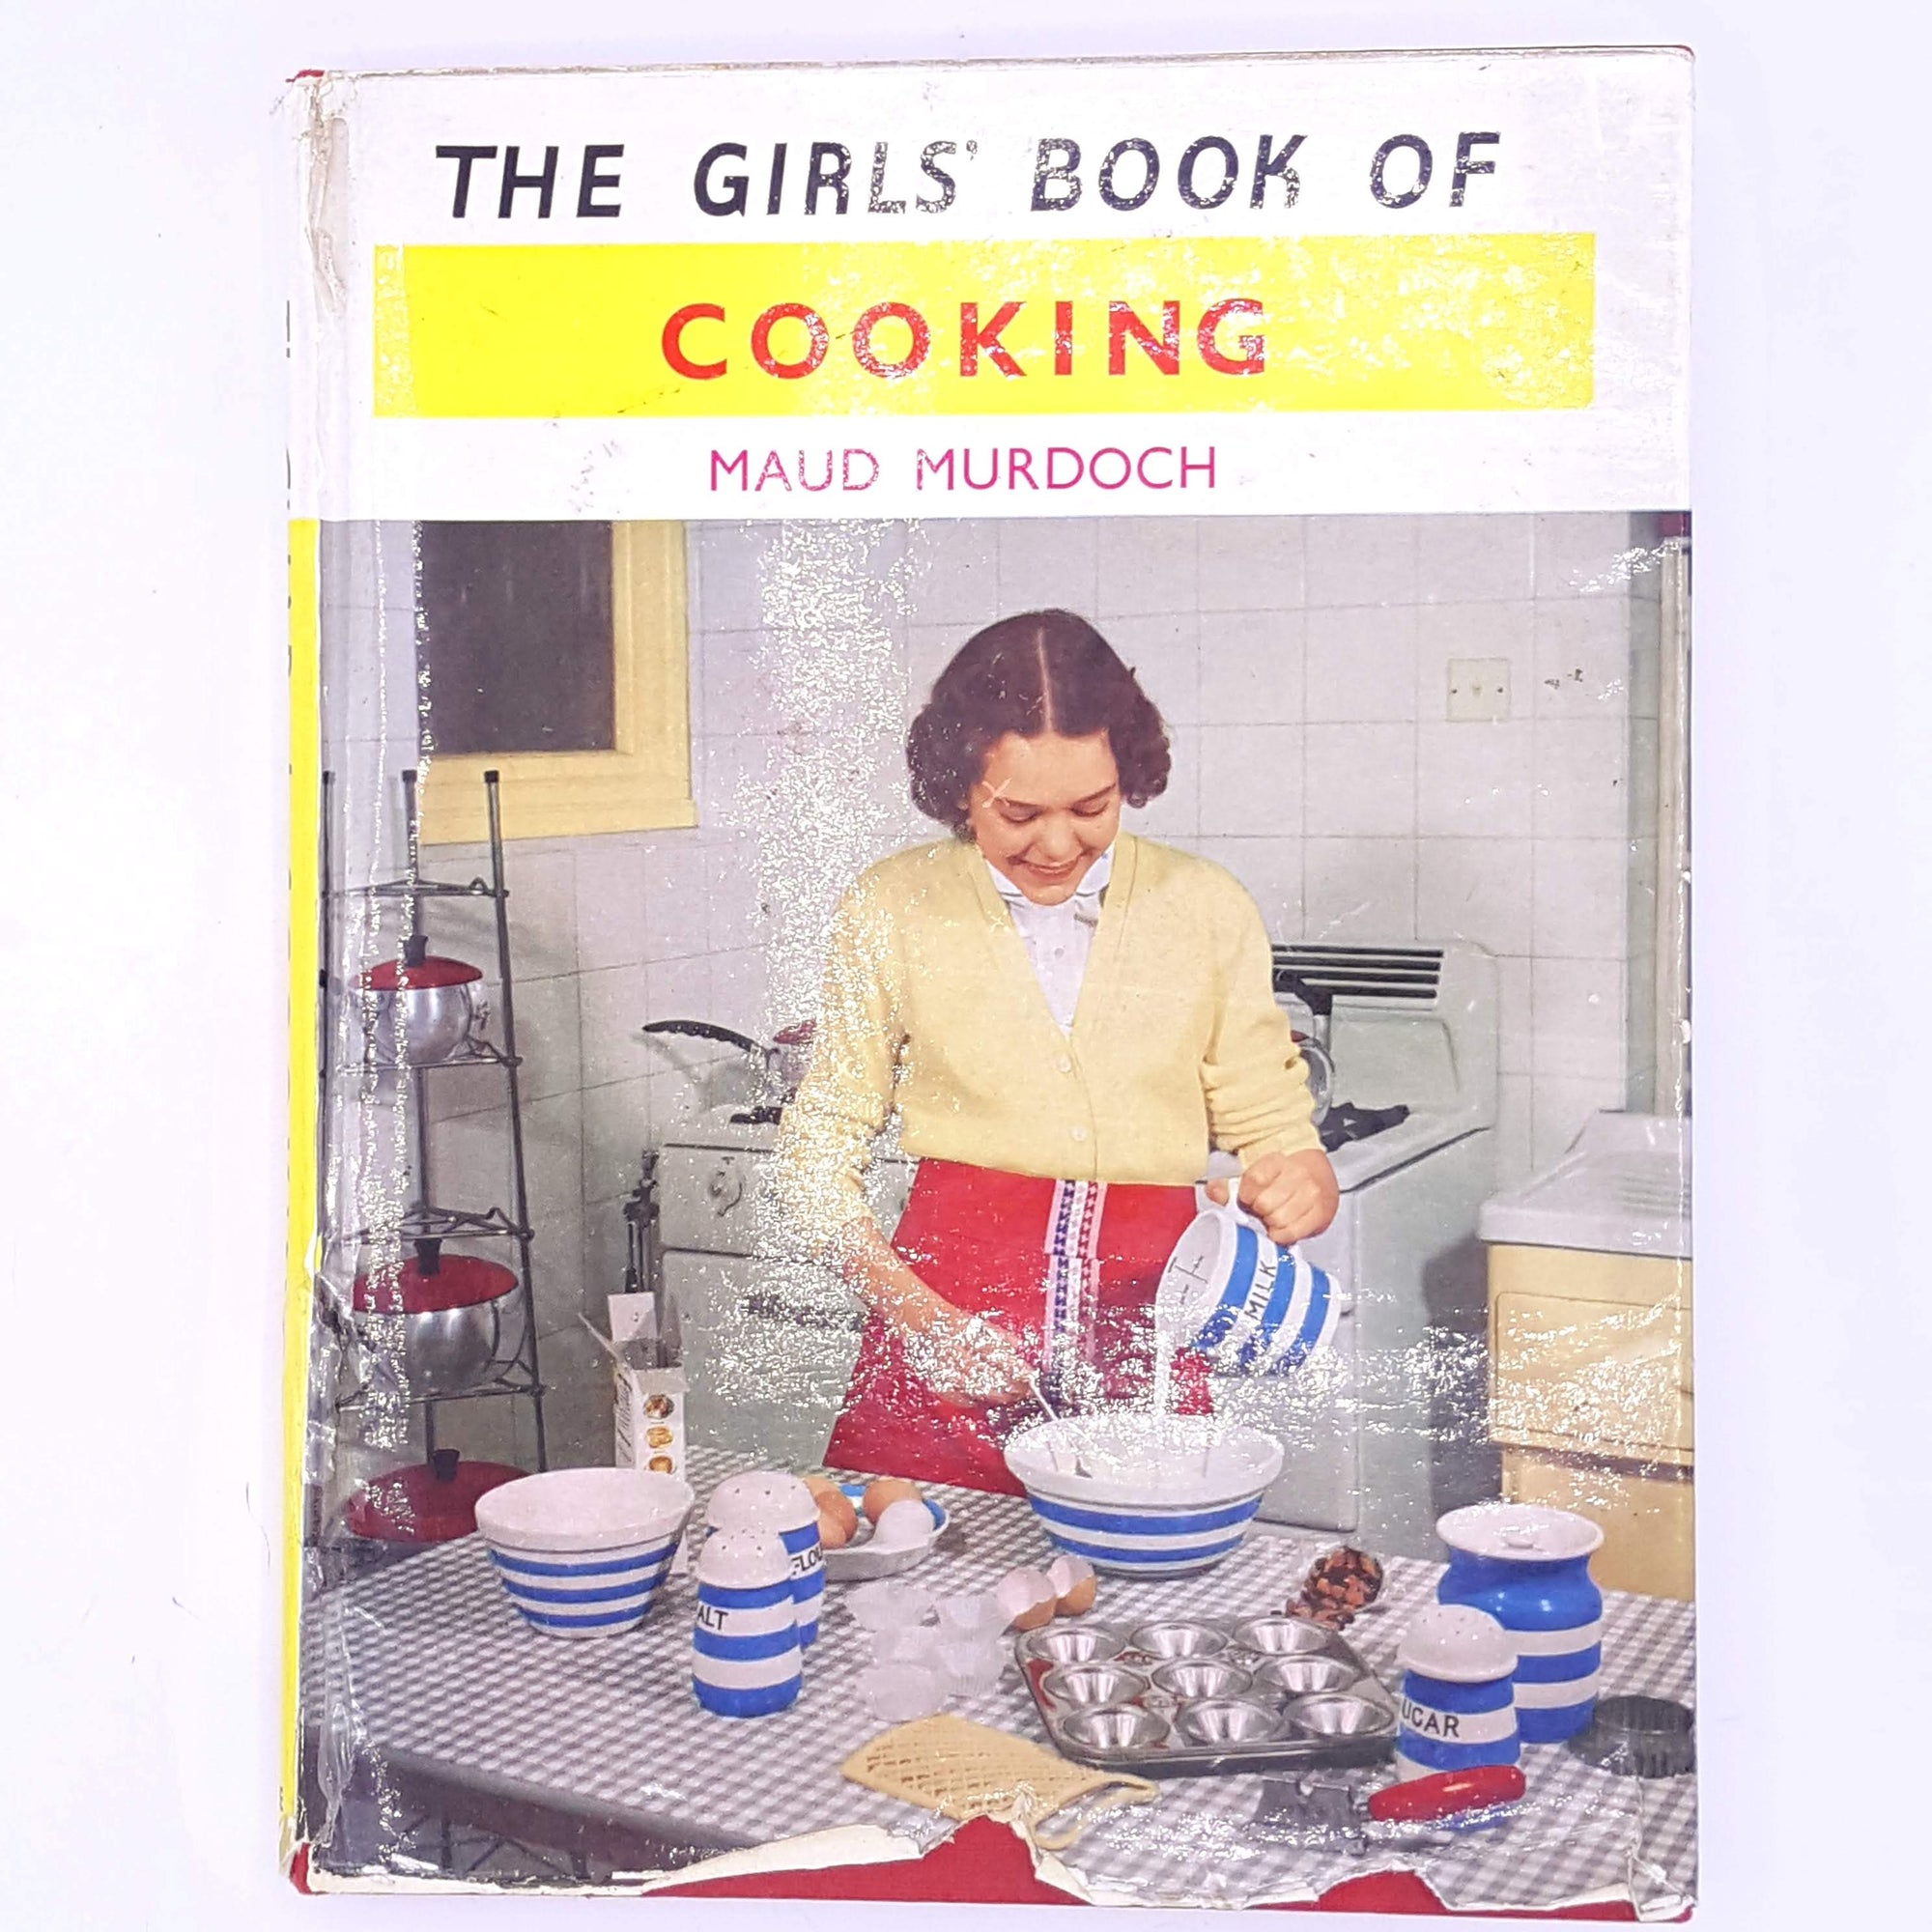 country-house-library-vintage-thrift-old-antique-books-decorative-patterned-classic-christmas-gifts-cookbooks-food-for-foodies-breakfast-lucnh-dinner-delicious-feeding-family-cooking-cook-baking-baker-tasty-